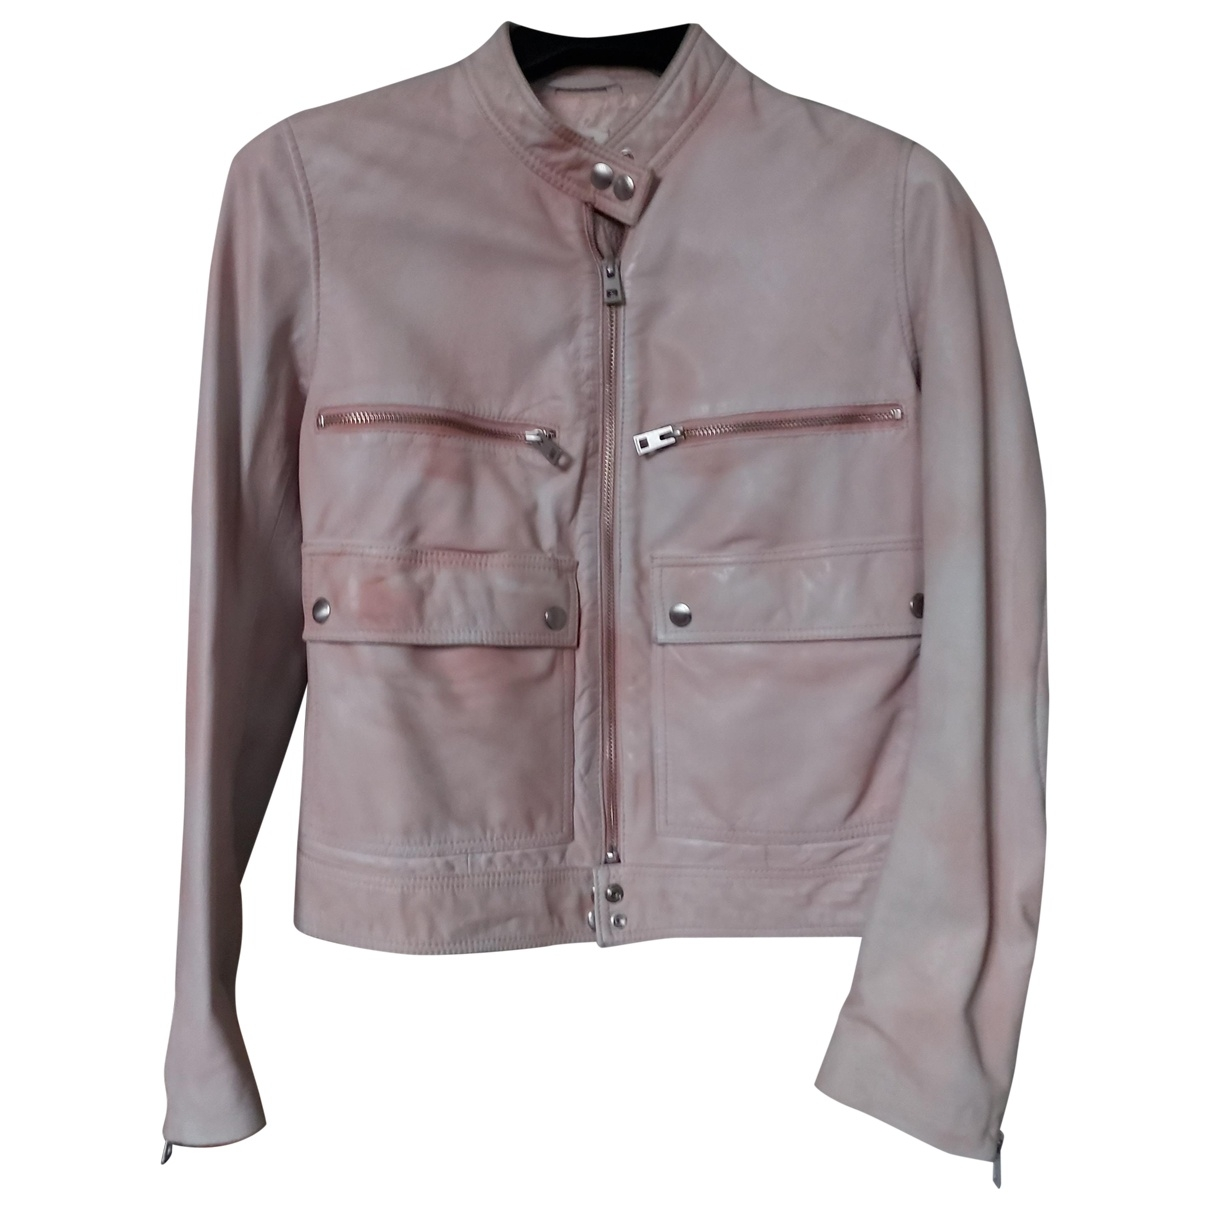 Zadig & Voltaire Spring Summer 2019 Pink Leather Leather jacket for Women 38 FR